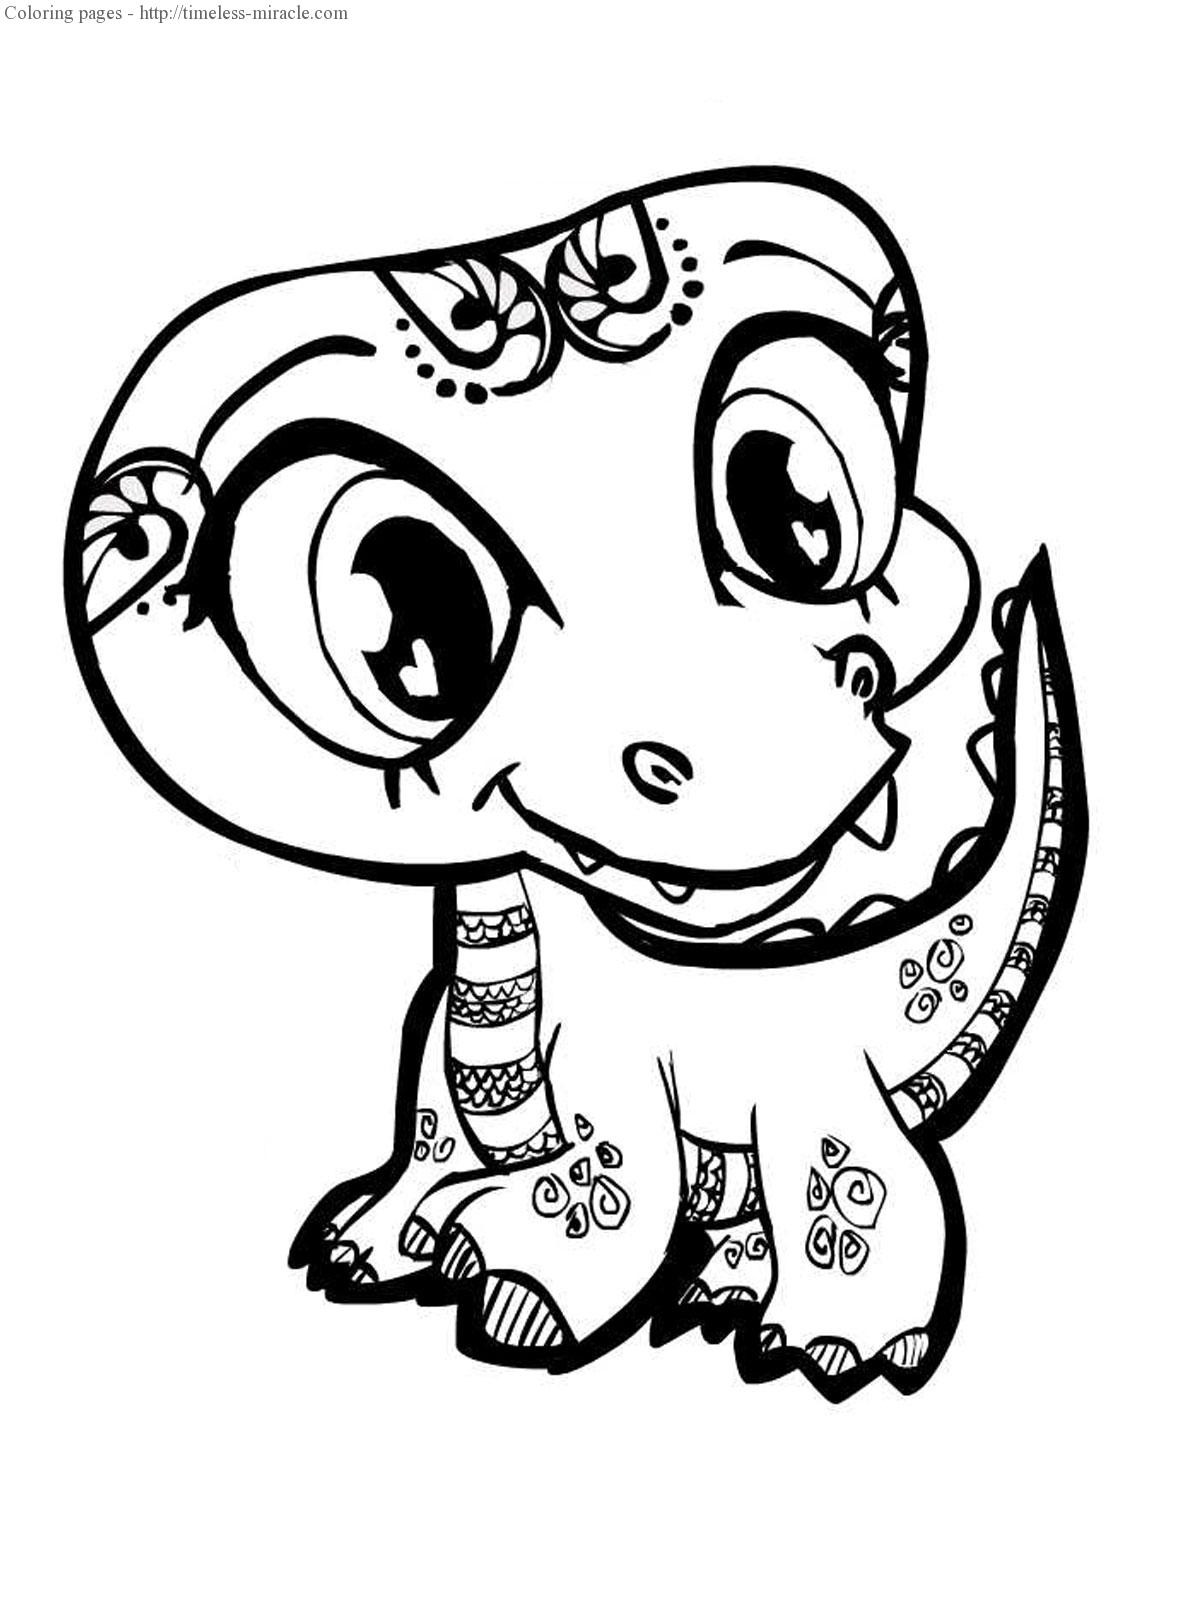 Best ideas about Coloring Pages For Girls 15 And Up . Save or Pin Cute coloring pages for girls Now.